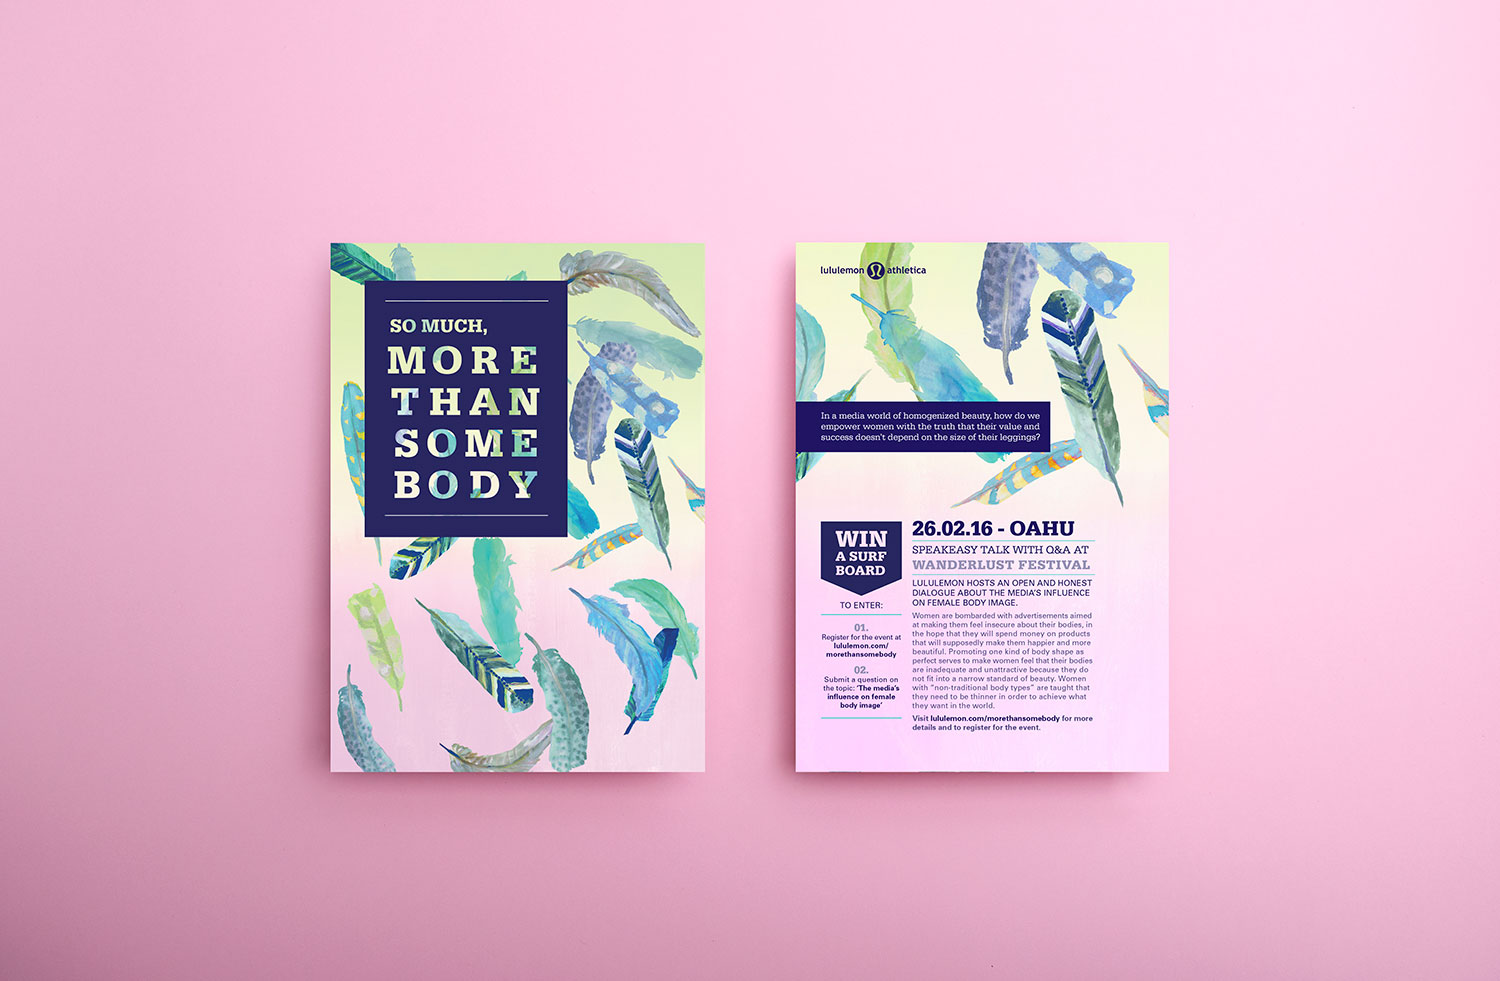 Lululemon event campaign graphic design concept advertising material, featuring pastel gradient, typesetting and watercolor hand painted feathers.